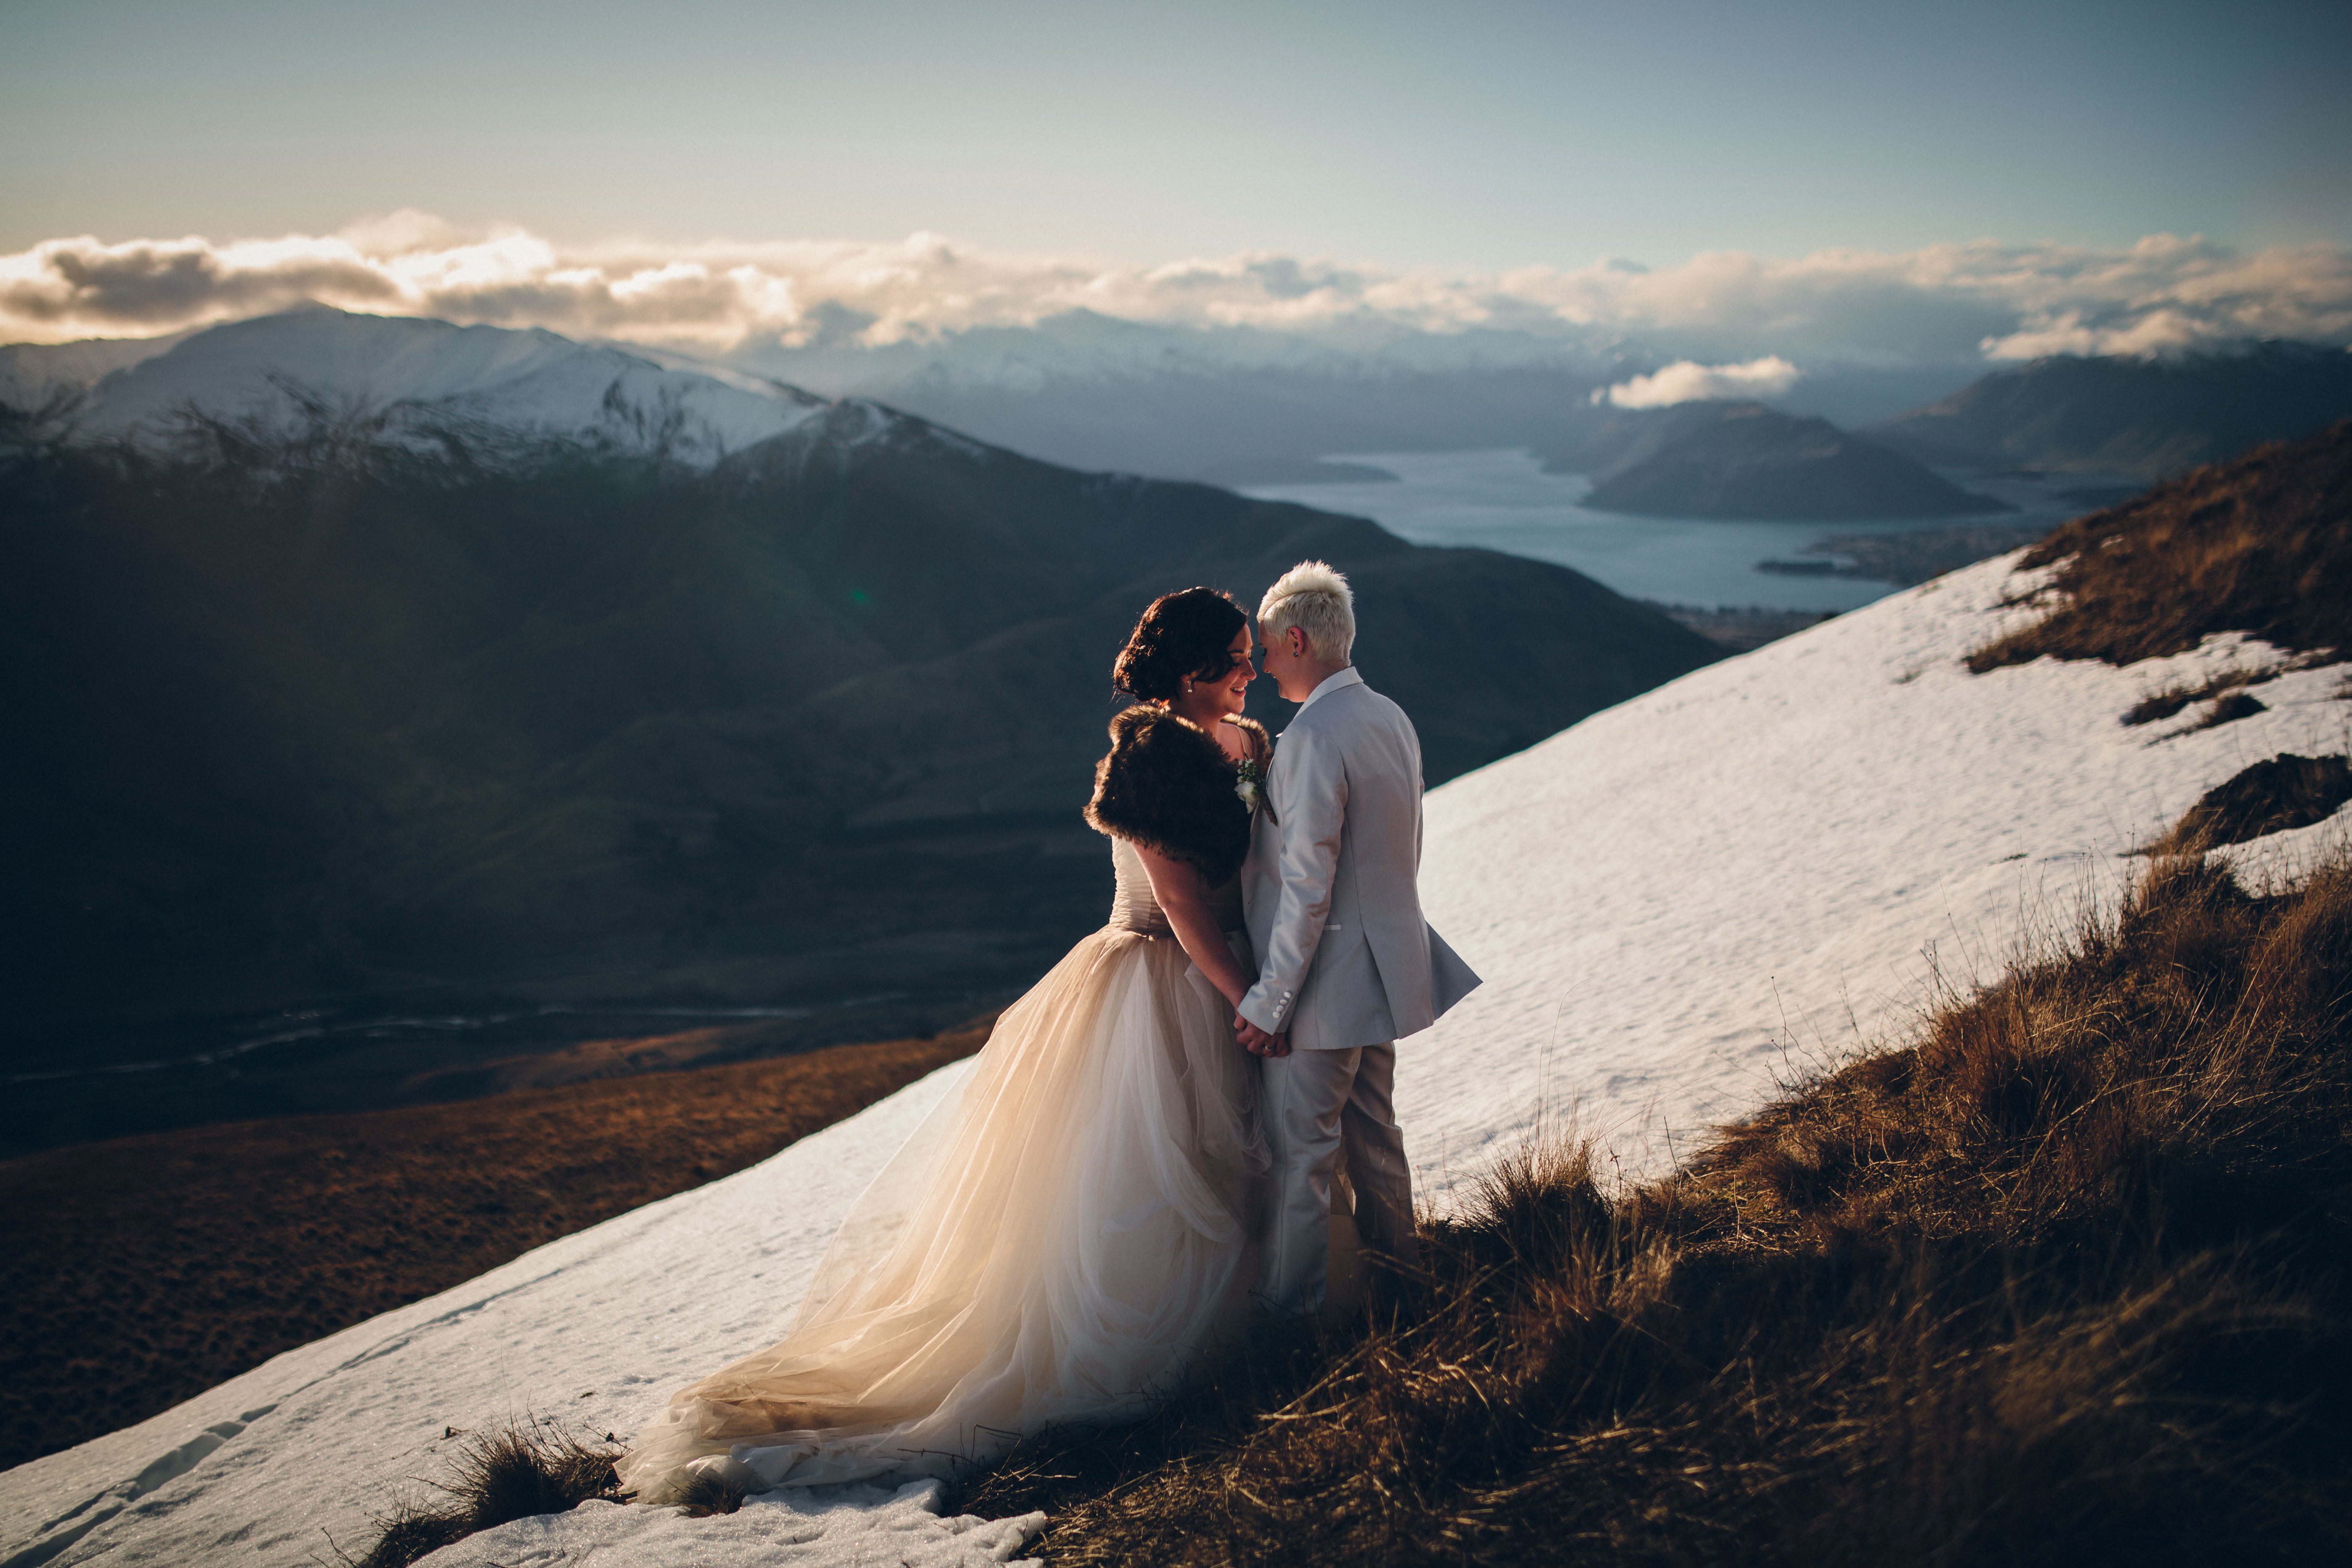 Behind the Mountainside Couple Portrait from Jim Pollard